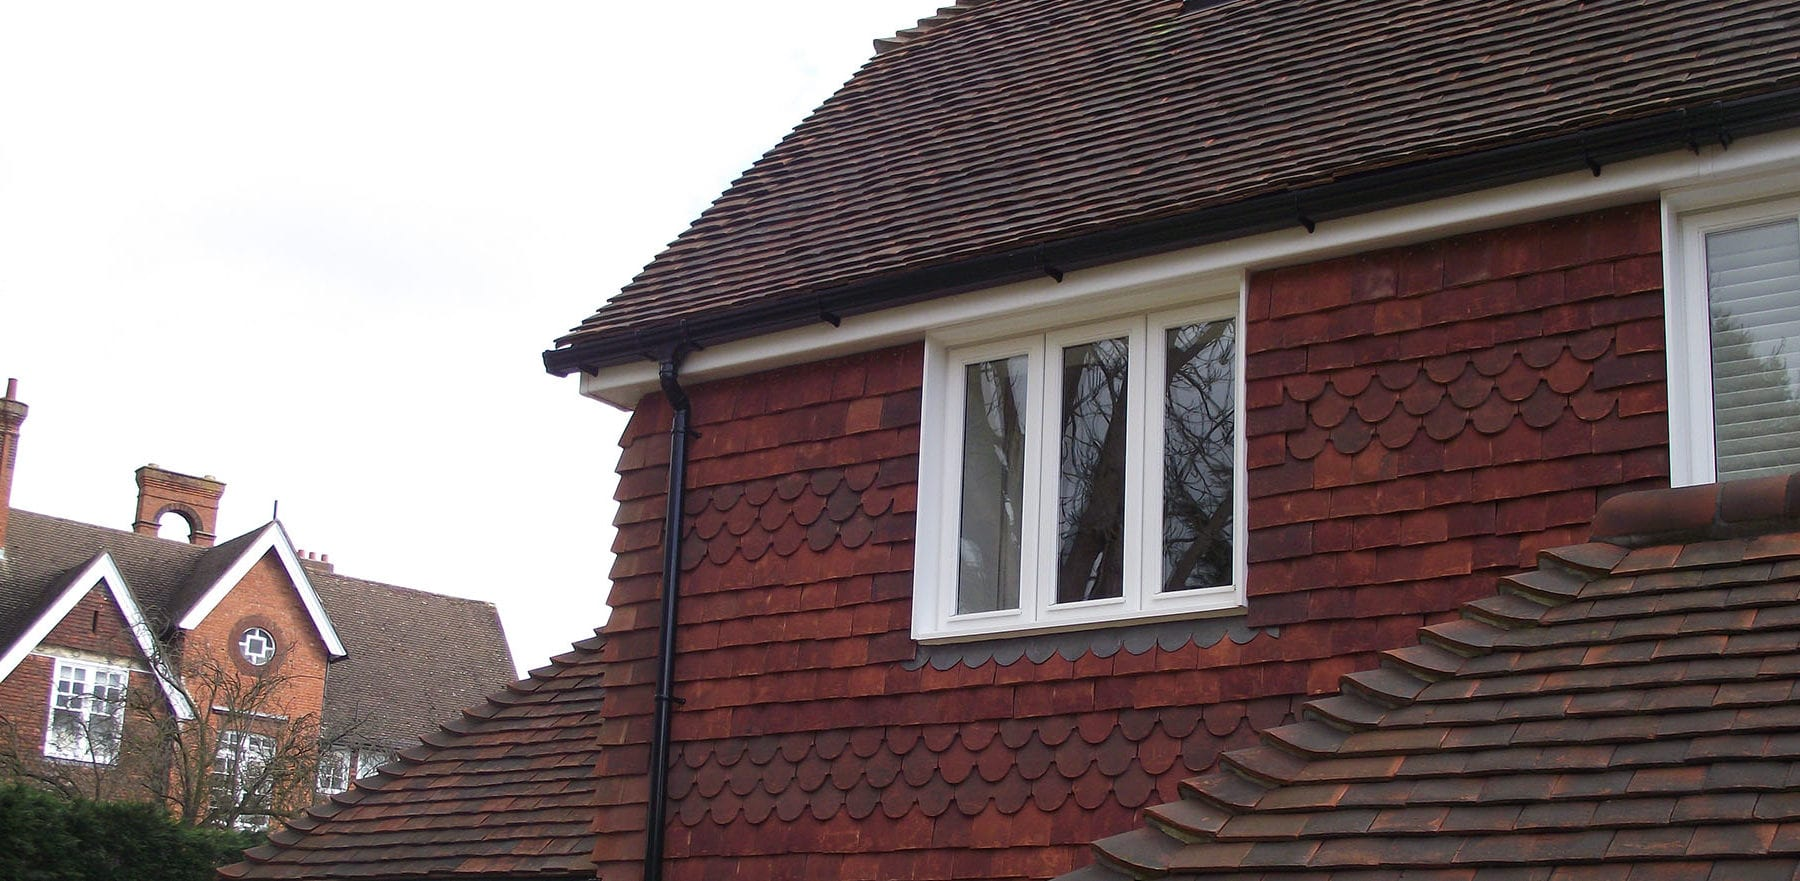 Lifestiles - Handcrafted Autumn Clay Roof Tiles - Seven Oaks, England 4